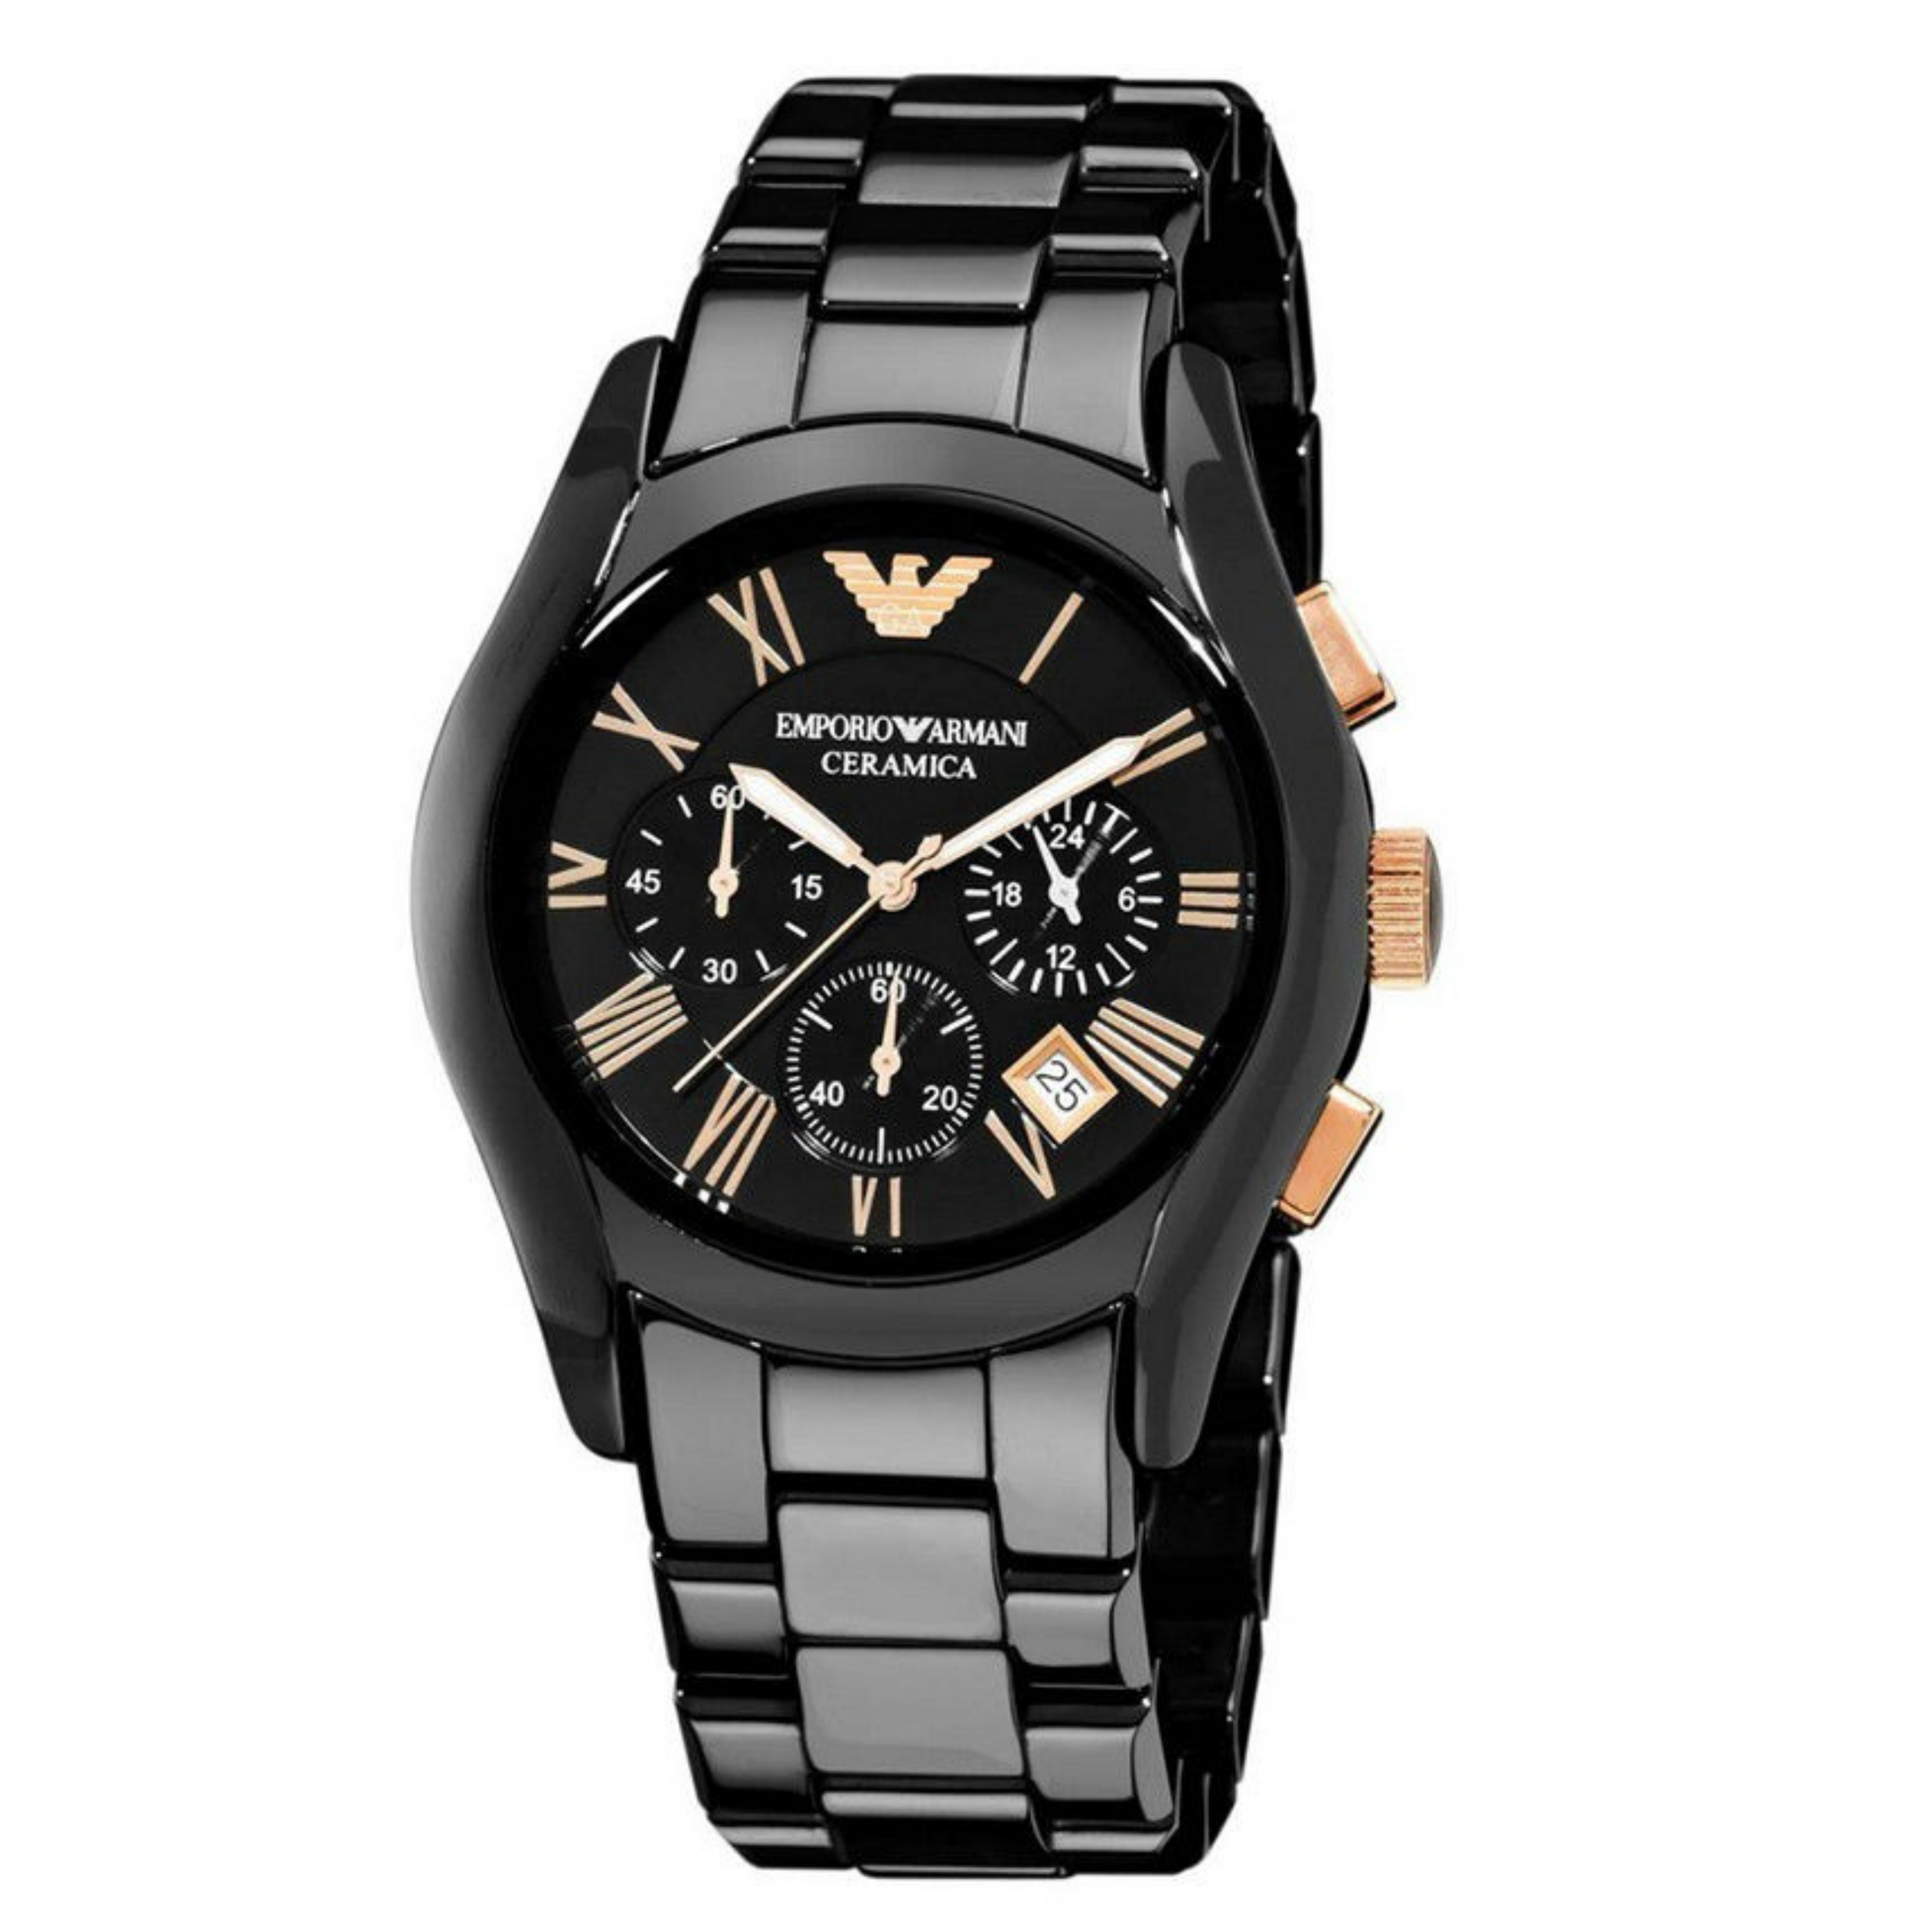 Emporio Armani Men's Watch|Black Chronograph Dial|Ceramic Bracelet Strap|AR1410